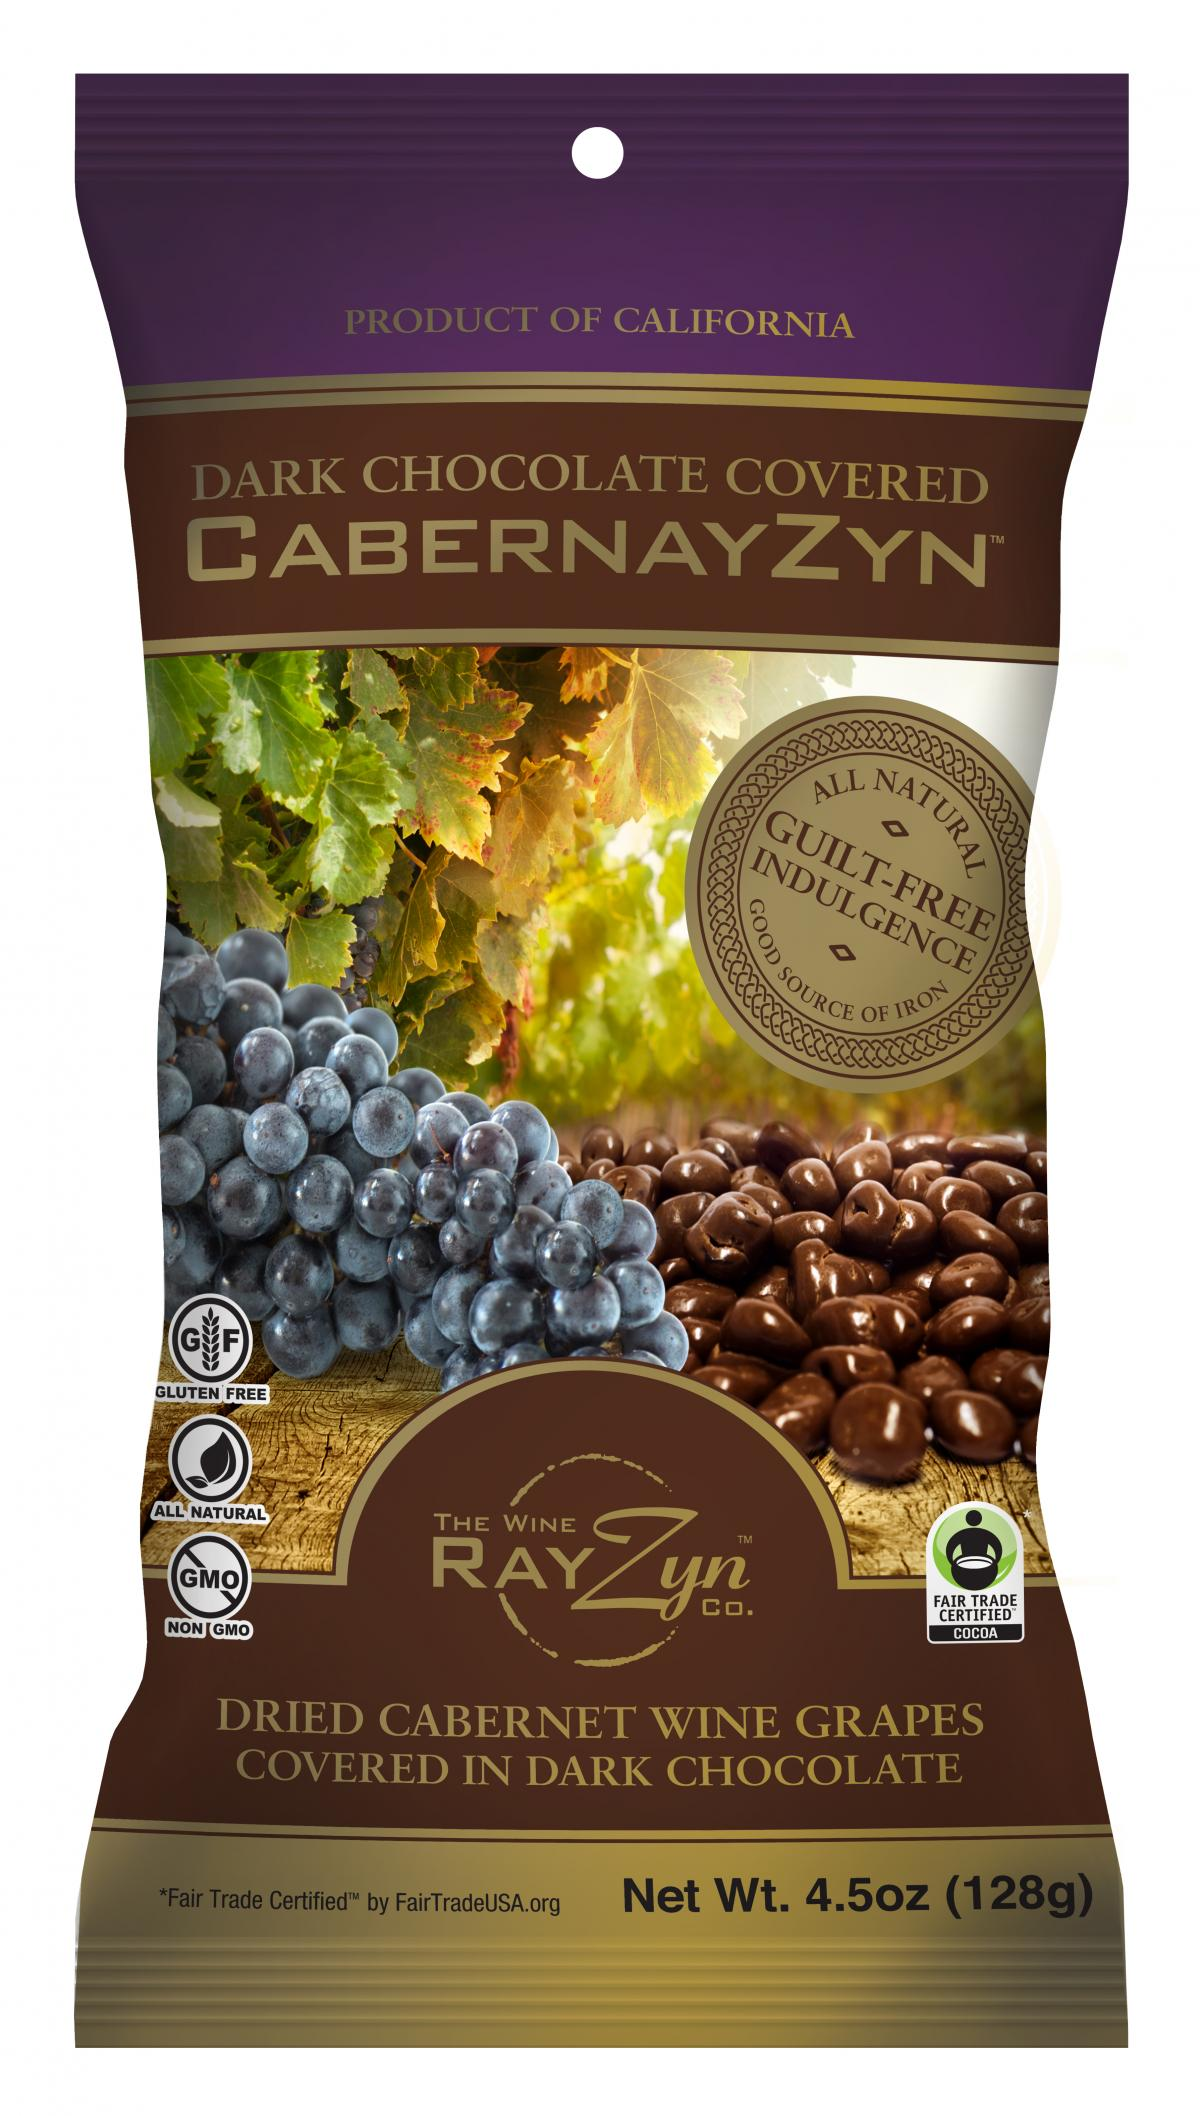 The Cates family created RayZyns in a bid to reduce food waste on their vineyard by using leftover grapes to make raisins.